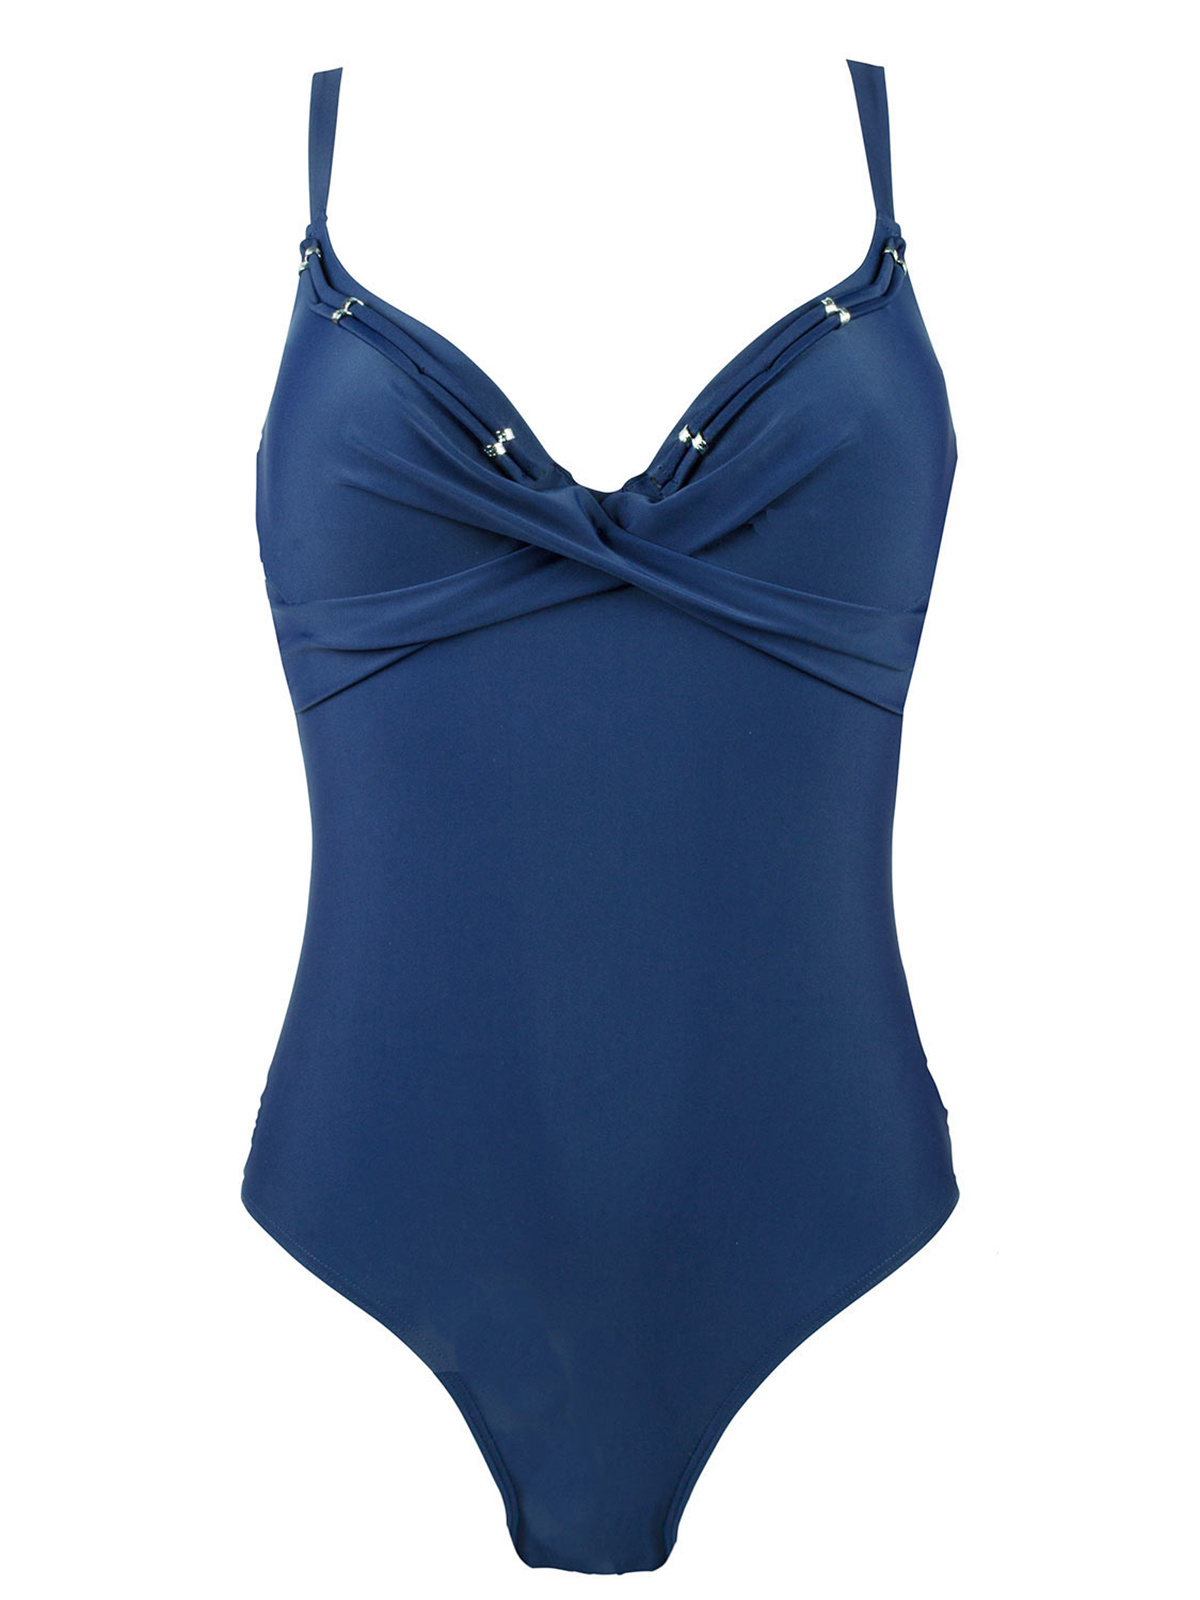 NATURANA Padded underwired suit 73119